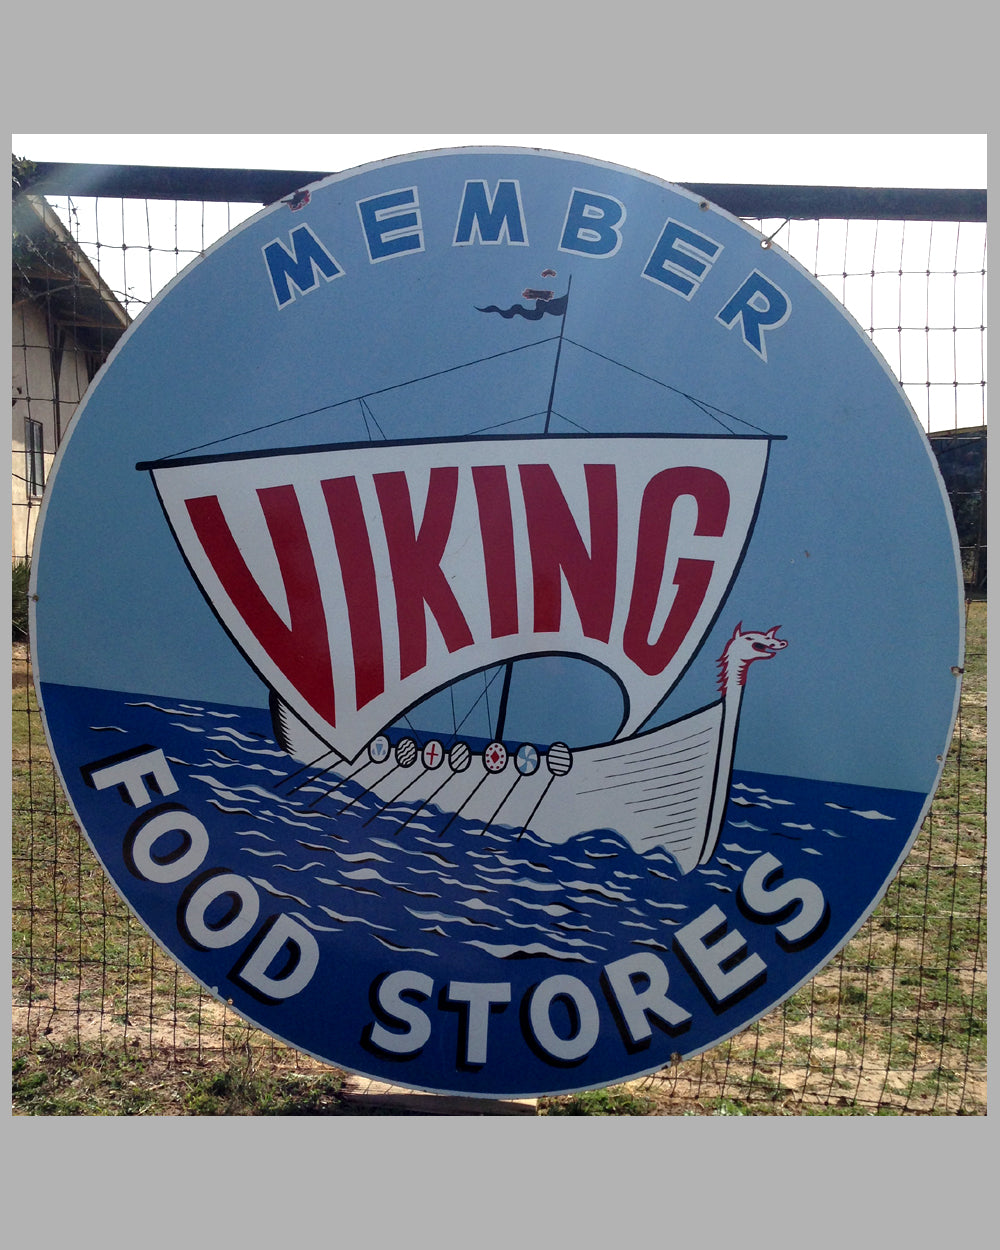 ca. 1930's - Member Viking Food Stores large metal enamel sign